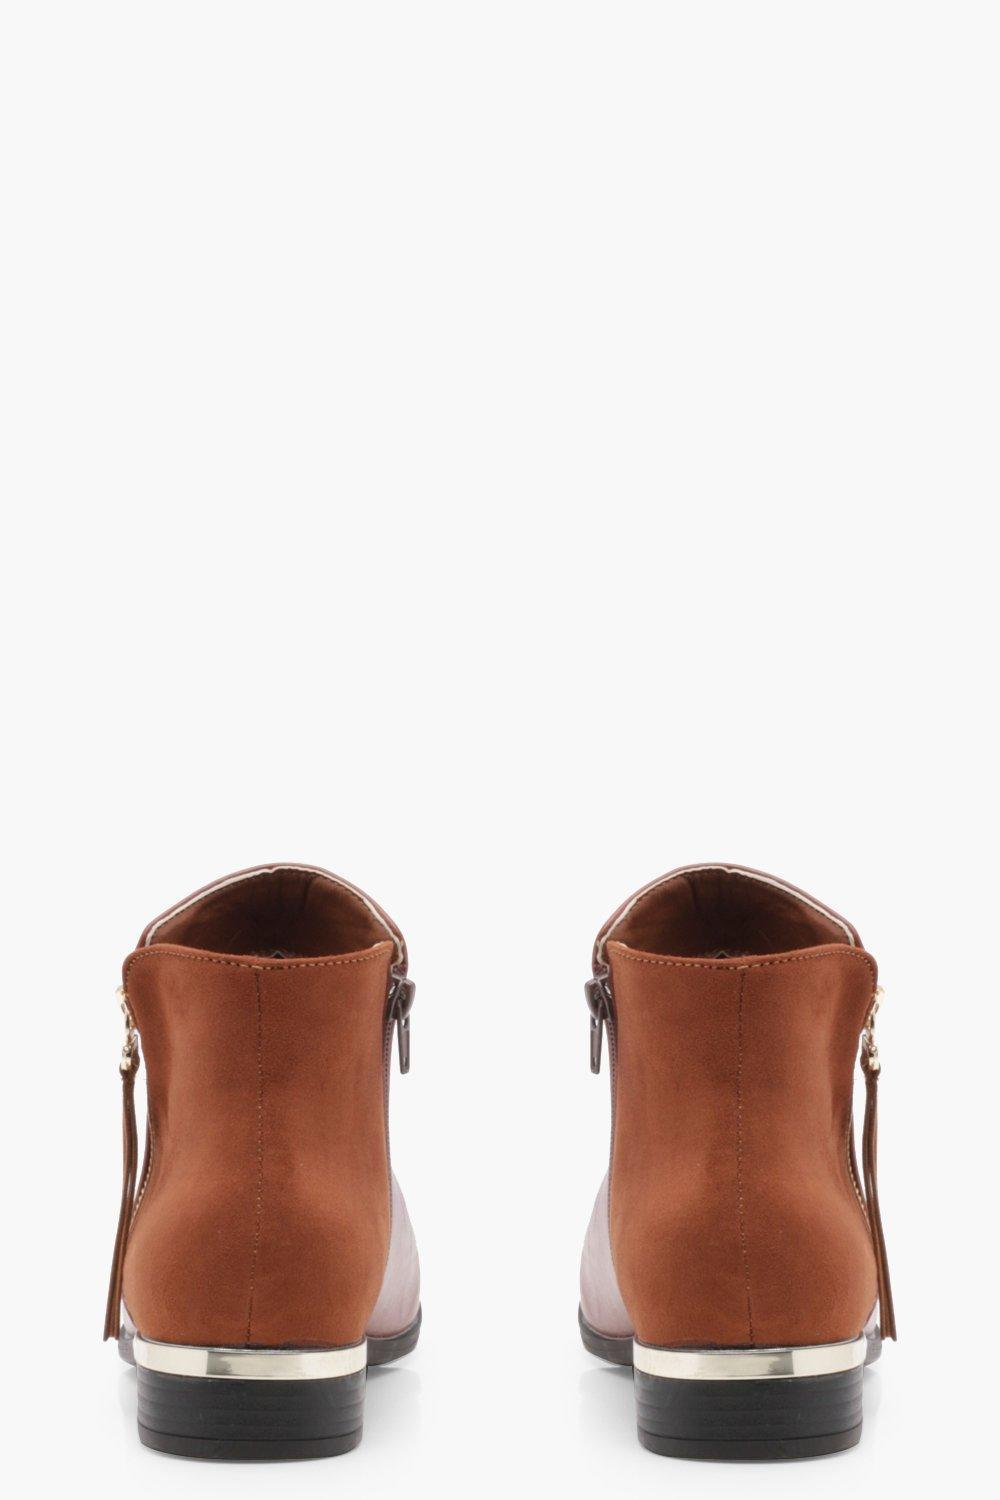 Boohoo Leather Lily Mix Material Zip Trim Chelsea Boot in Tan (Brown)